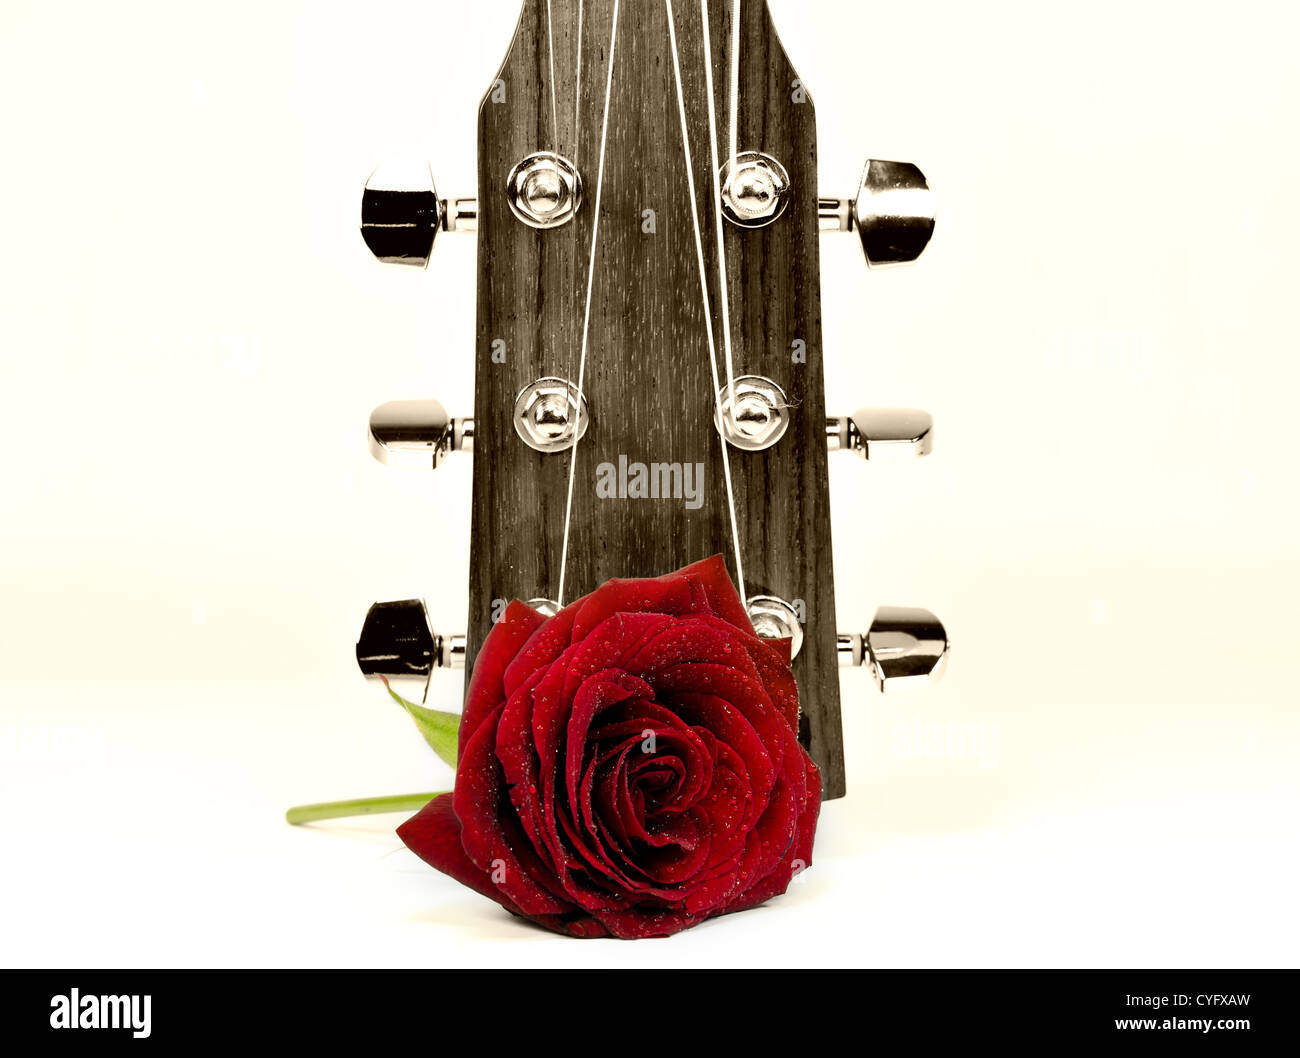 an acoustic guitar and a red rose in the foreground - Stock Image